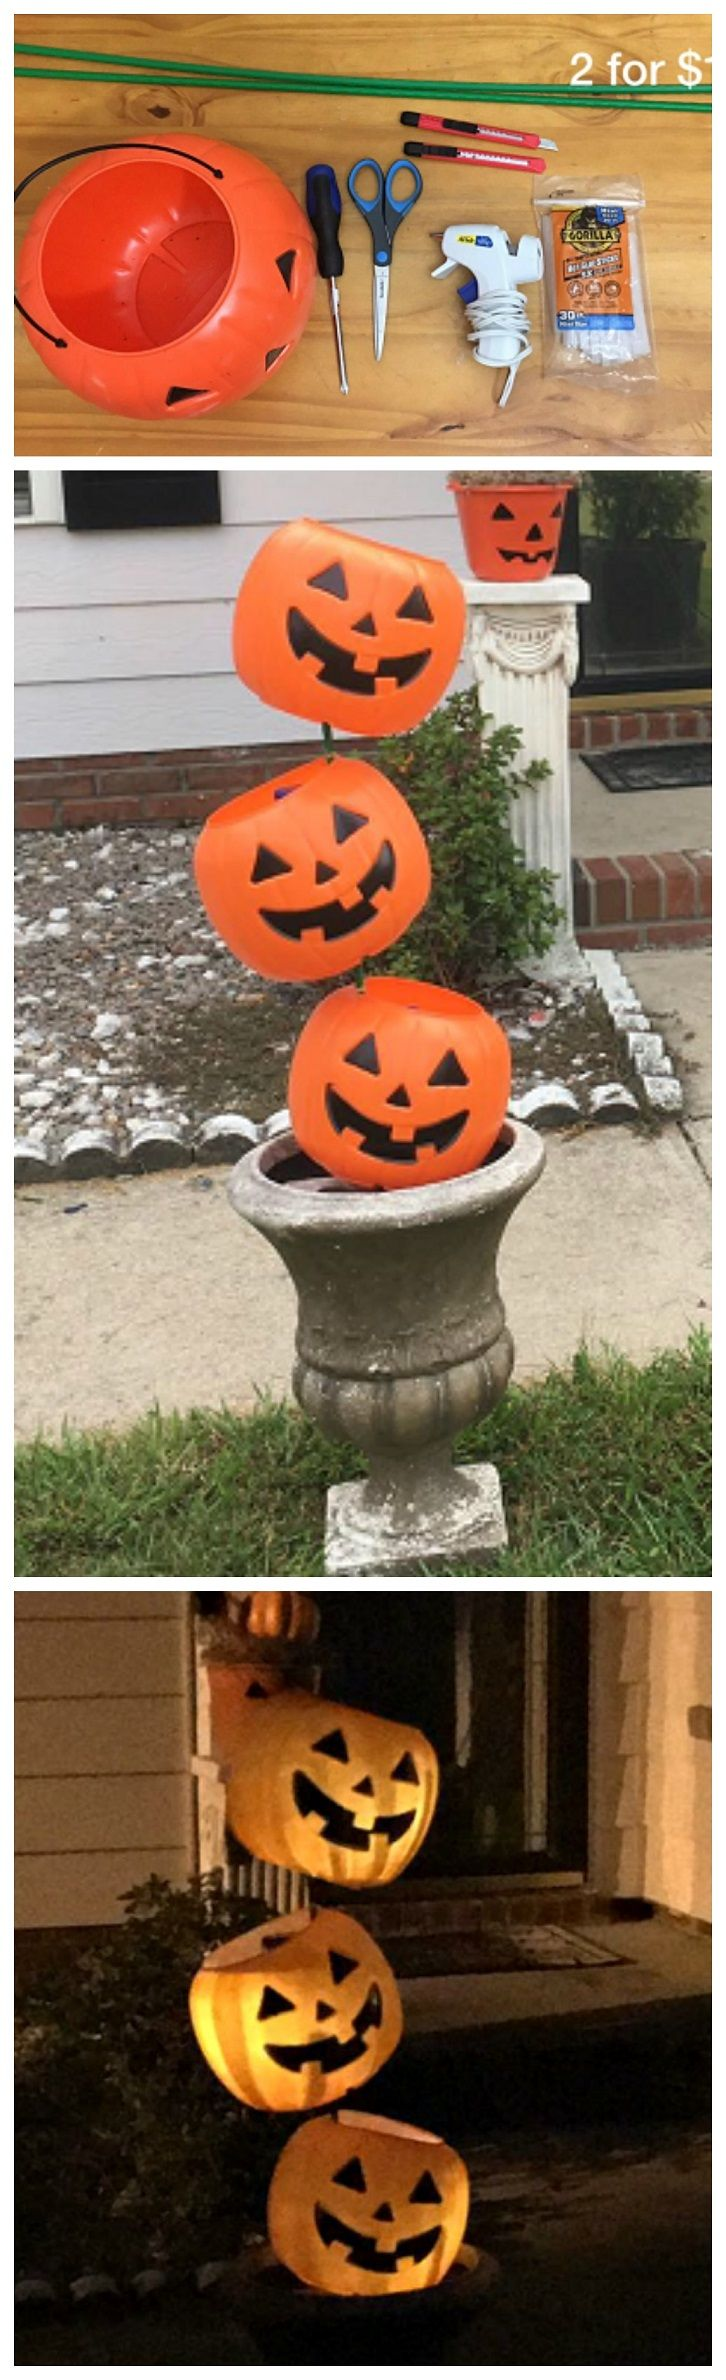 make a plastic pumpkin pail tipsy decoration for halloween such a cheap and easy craft - Cheap Easy Halloween Decorating Ideas